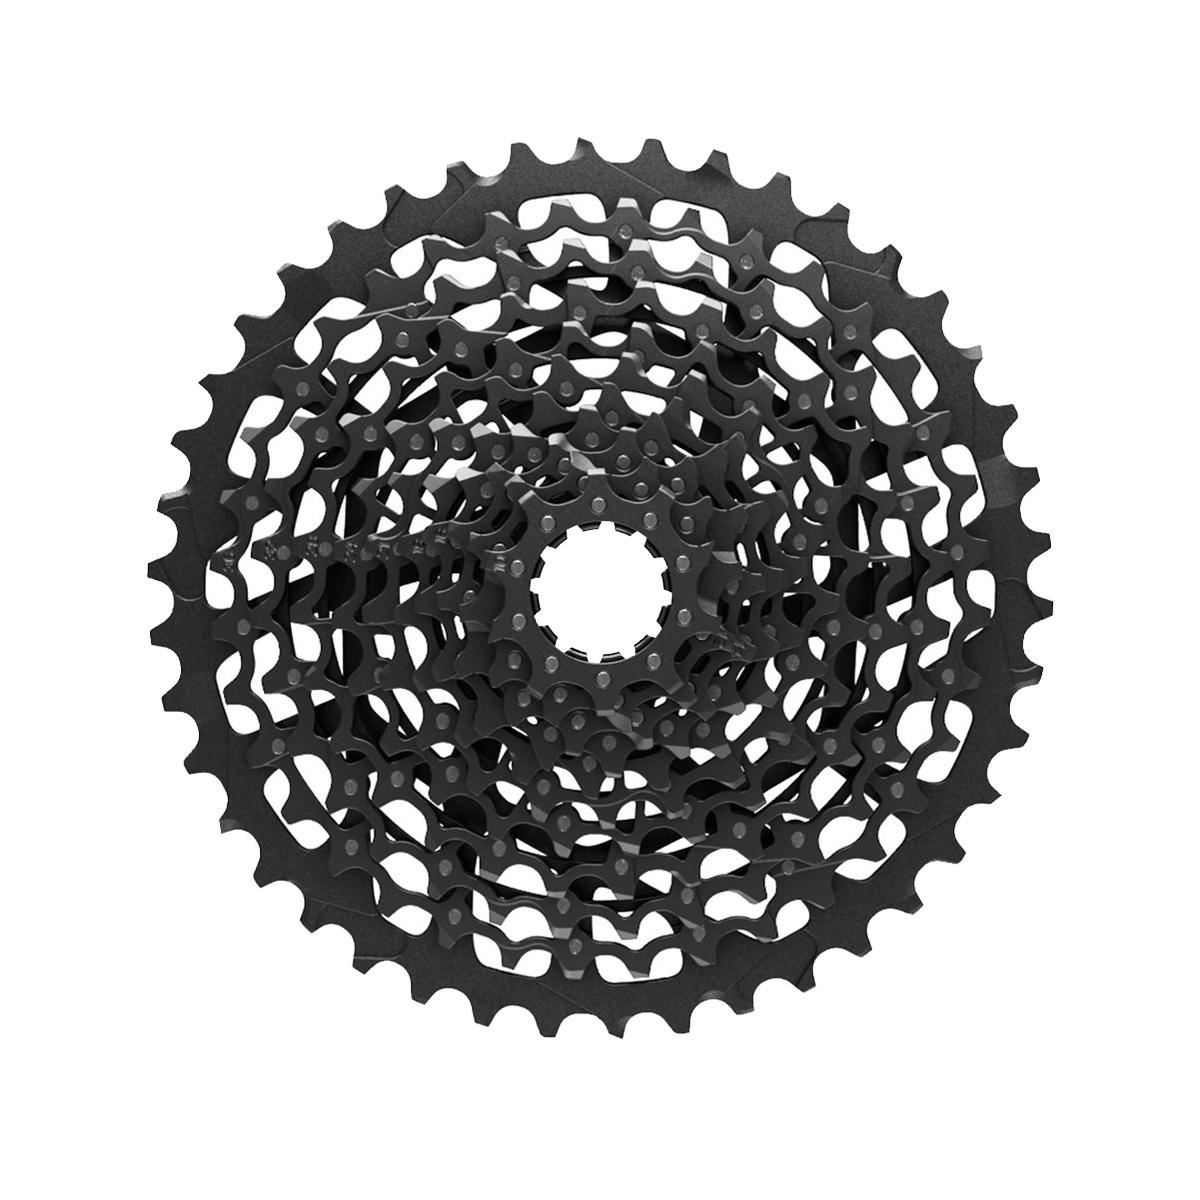 Sram Cassette Xg-1175 10-42 11 Speed: Black